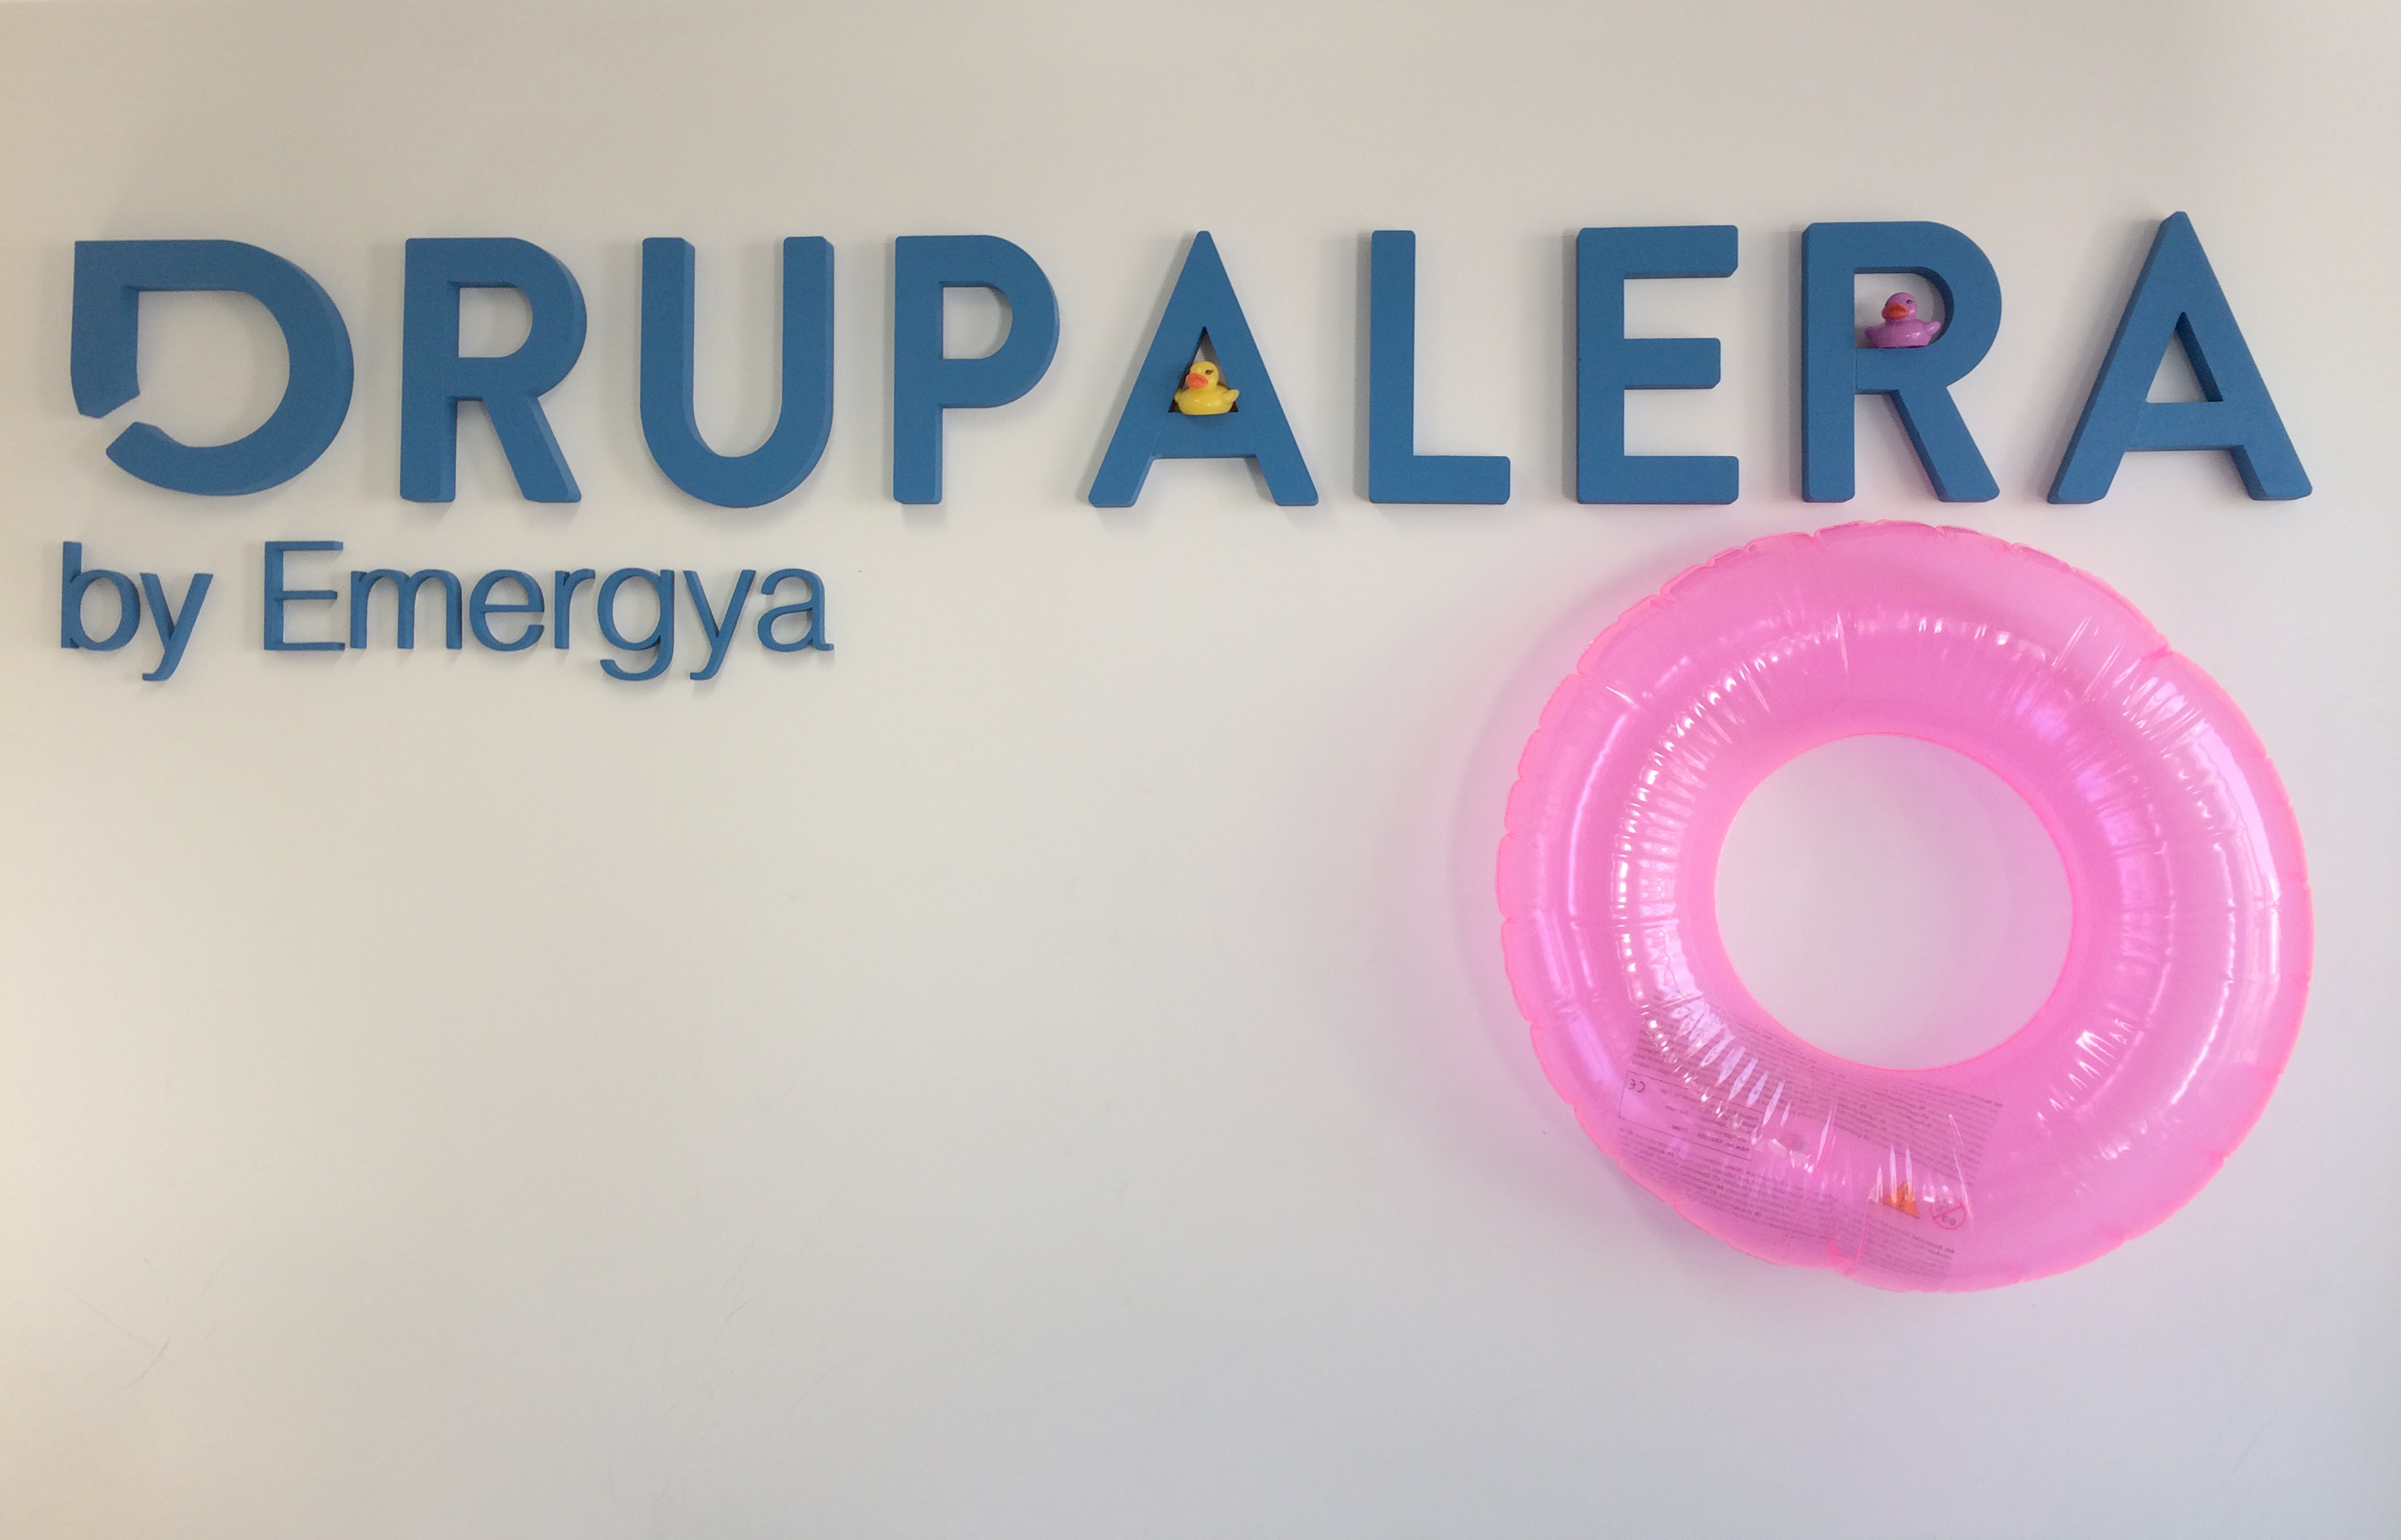 La Drupalera brings you the most refreshing Drupal events of the summer